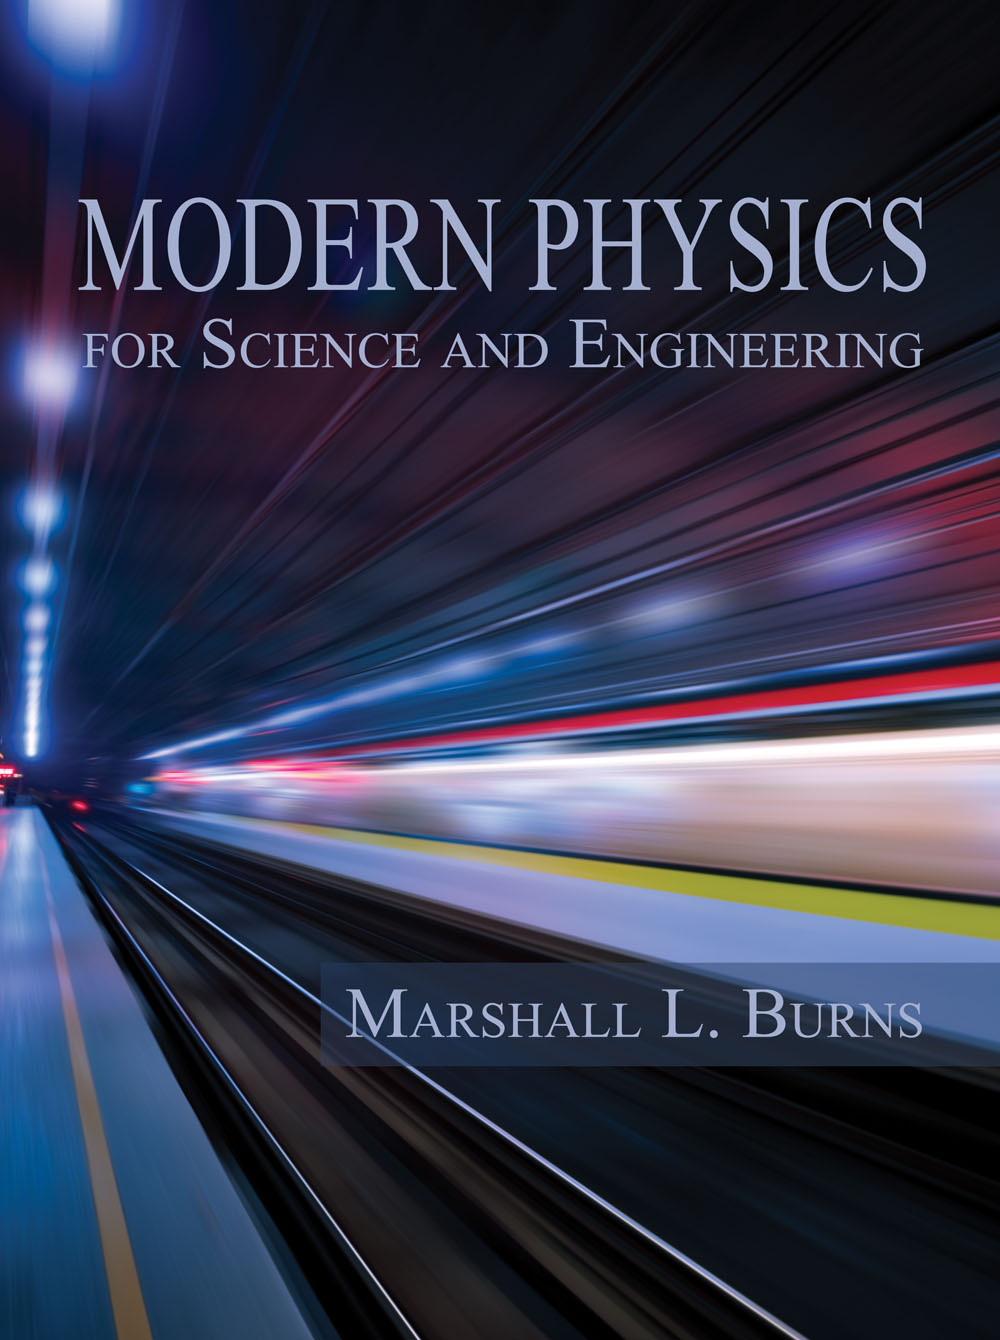 Modern Physics for Science and Engineering by Marshall Burns